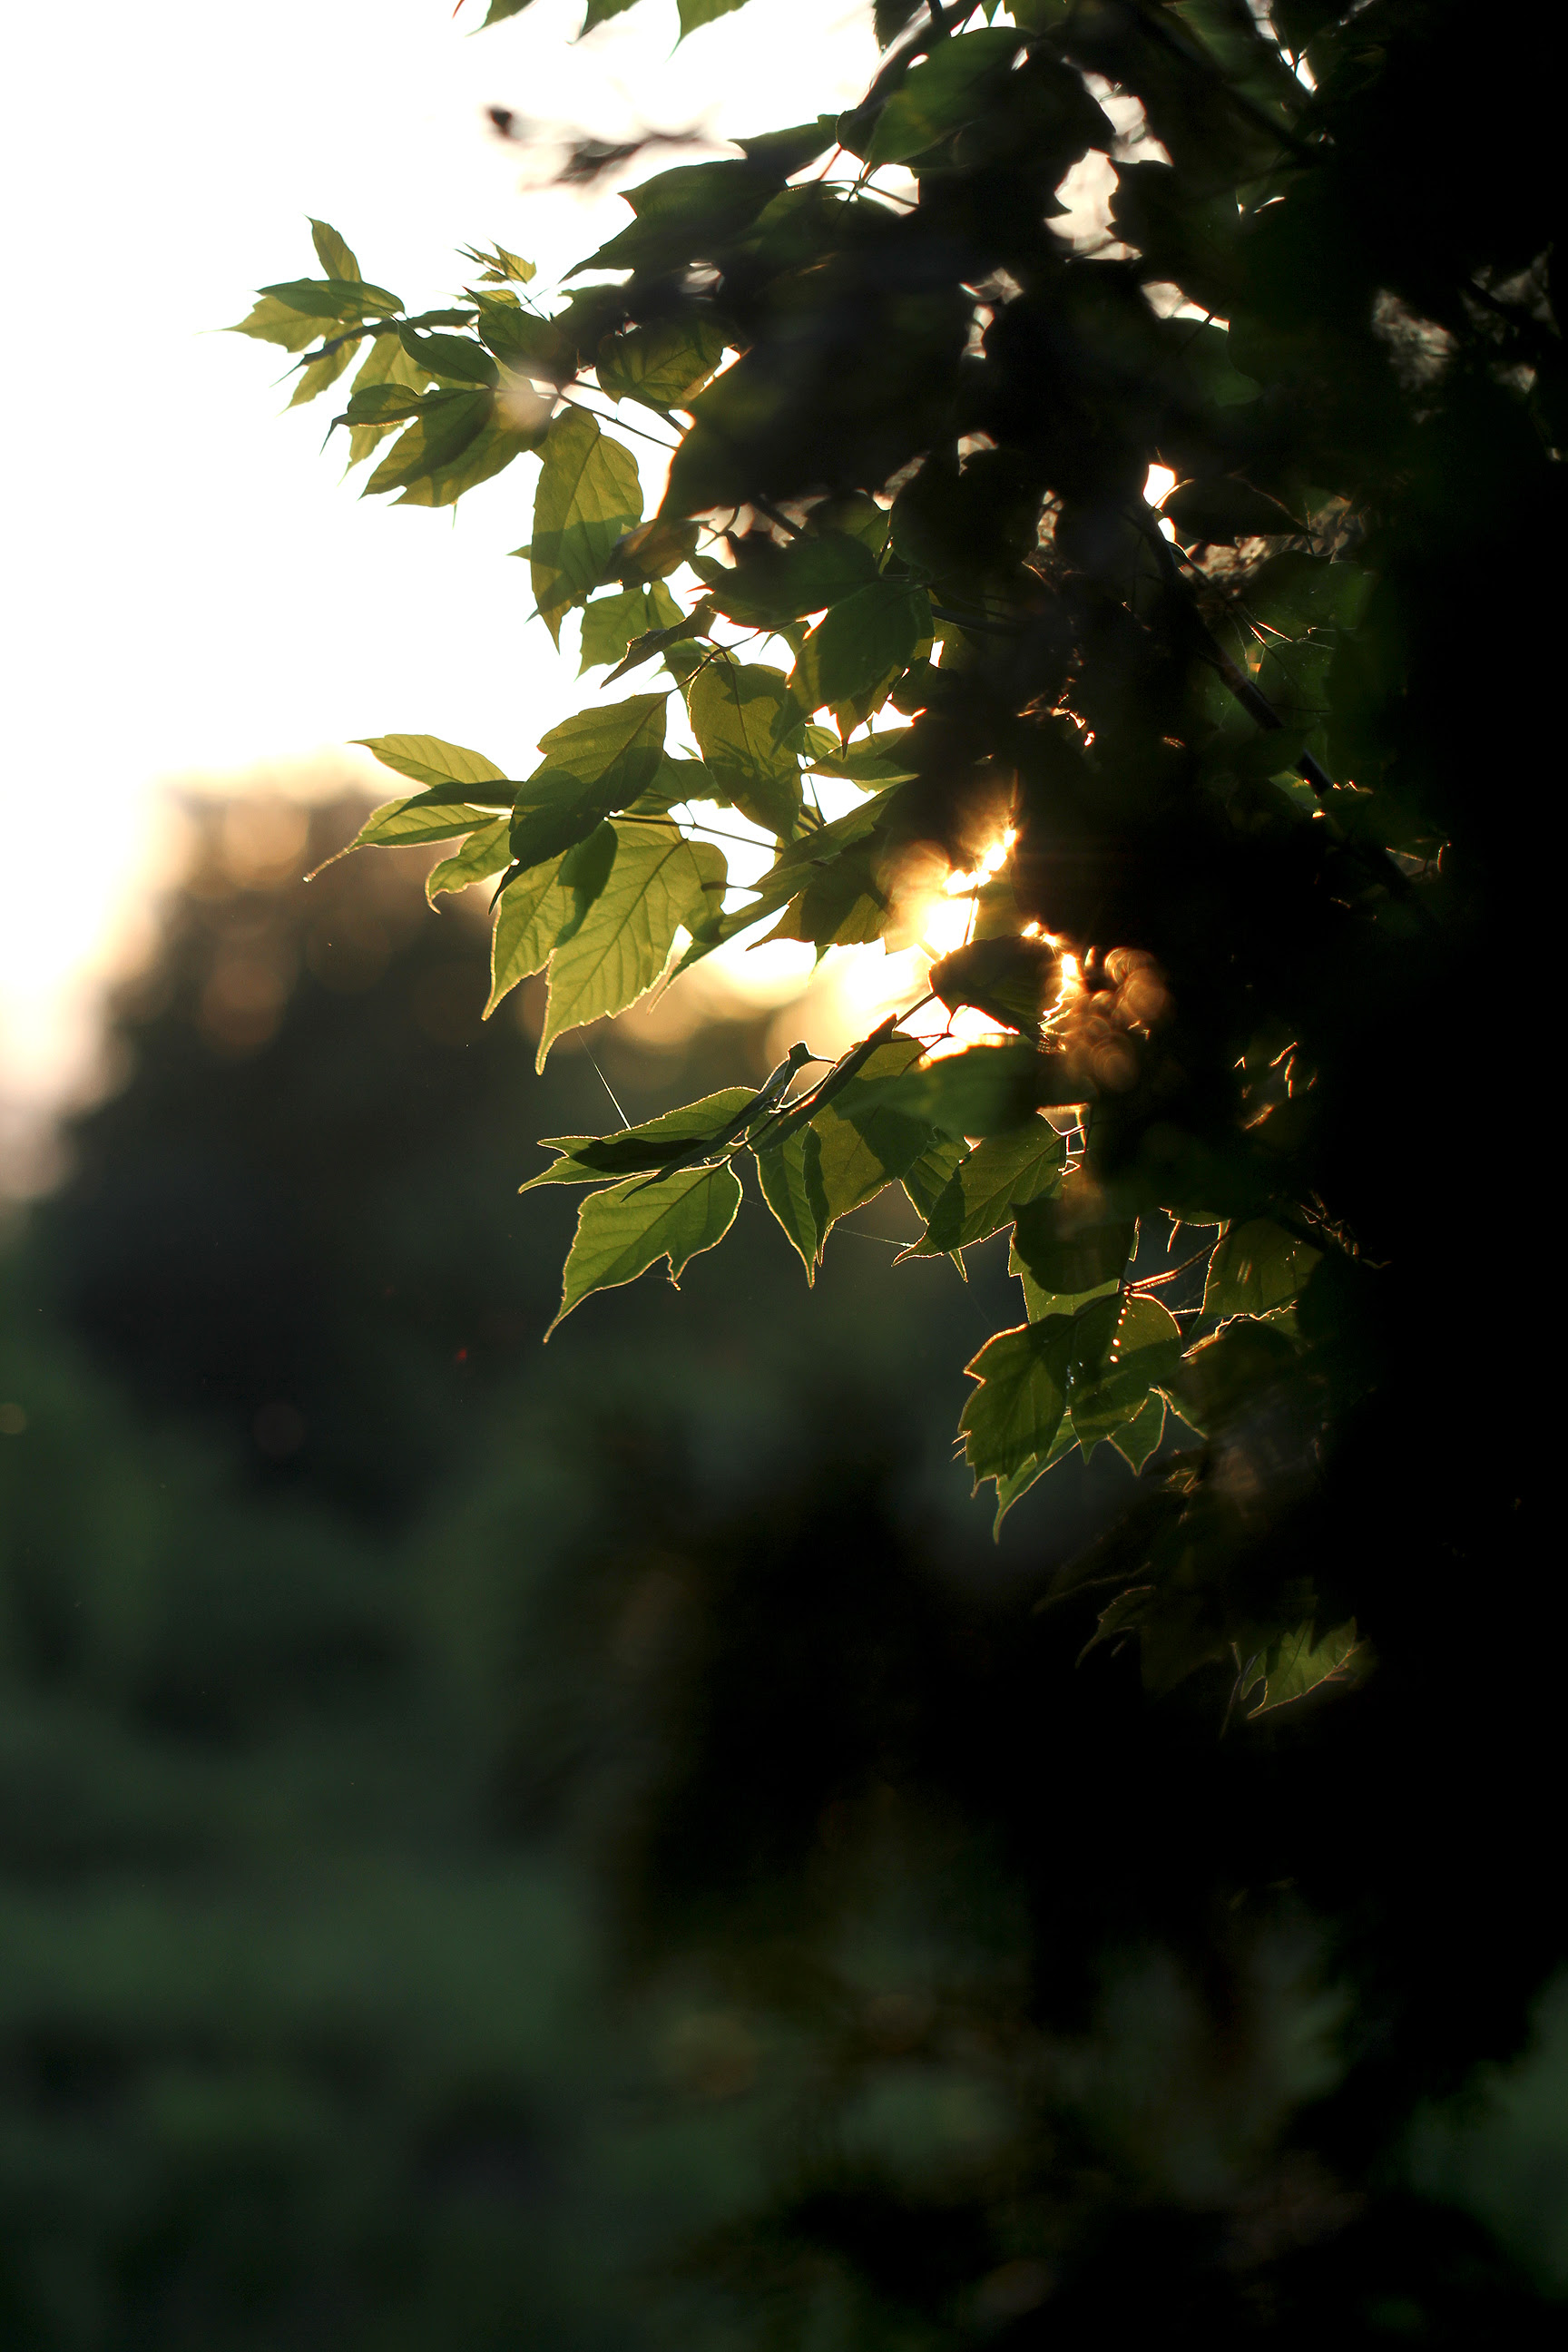 setting sun behind leaves